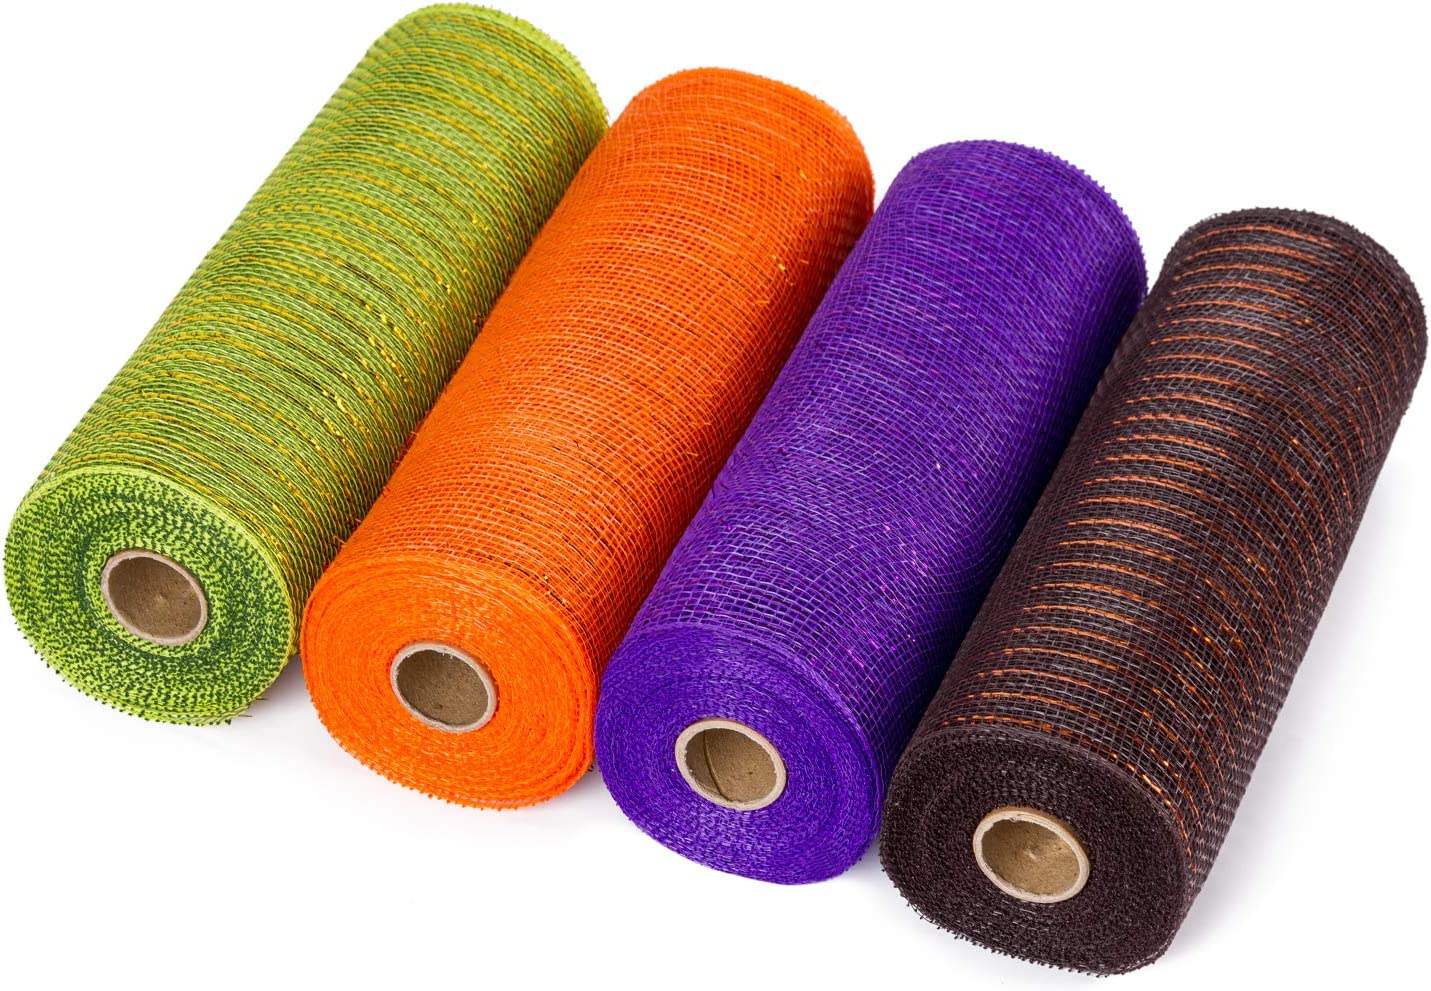 LaRibbons Deco Poly Mesh Ribbon - 10 inch x 30 feet Each Roll - Metallic Foil Orange/Black/Purple/Green Set for Wreaths, Swags and Decorating - 4 Pack